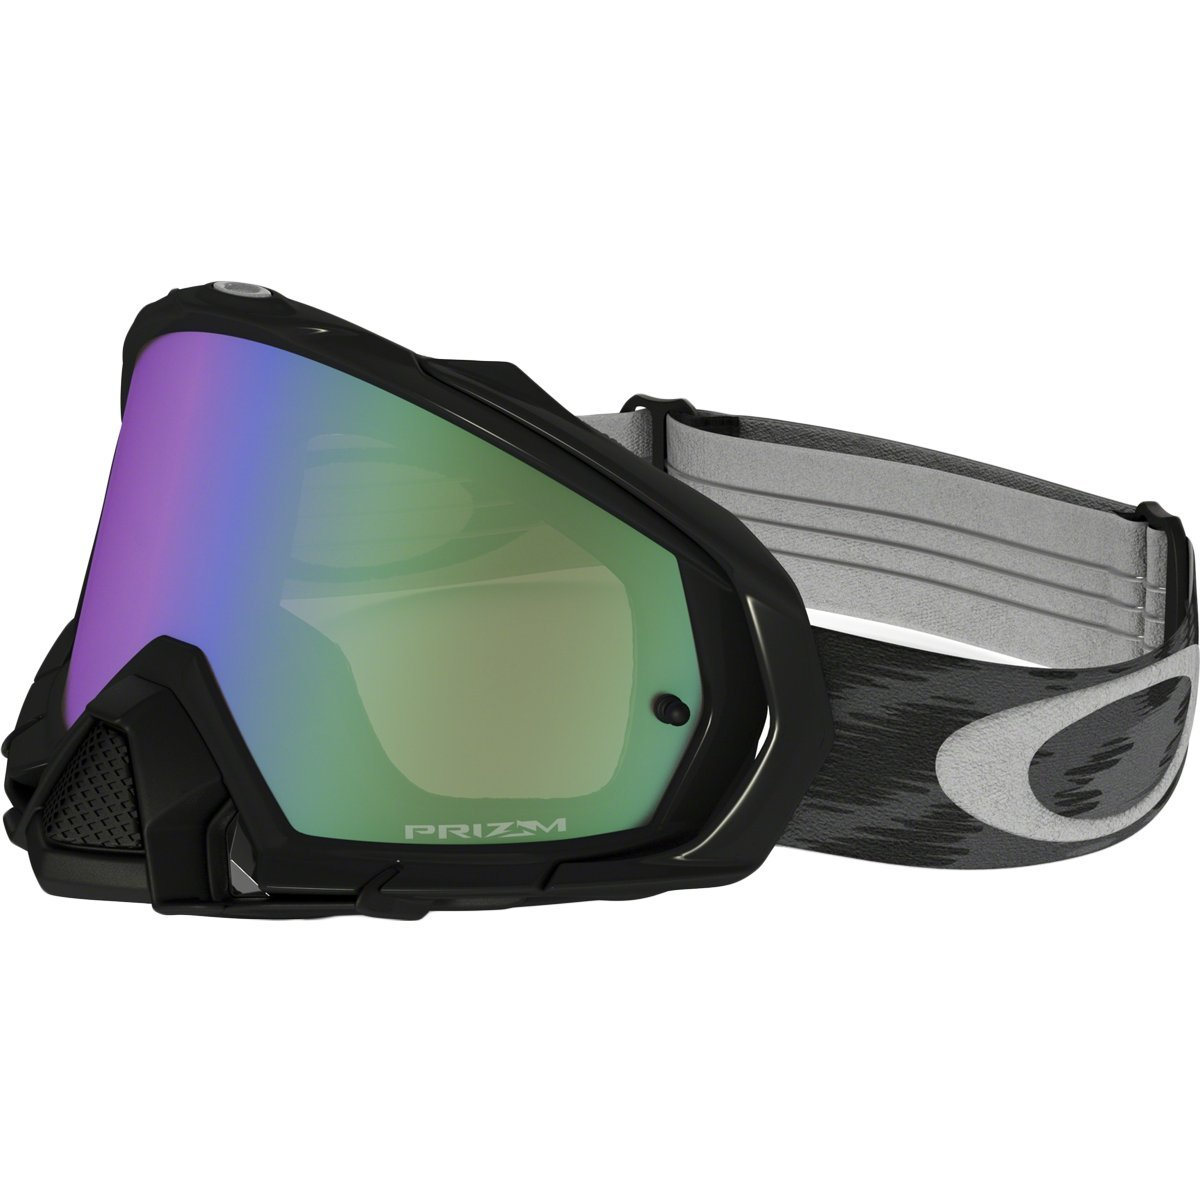 Oakley Mayhem Pro MX Adult Off-Road Motorcycle Goggles Eyewear - Jet Black/Prizm MX Jade/One Size Fits All